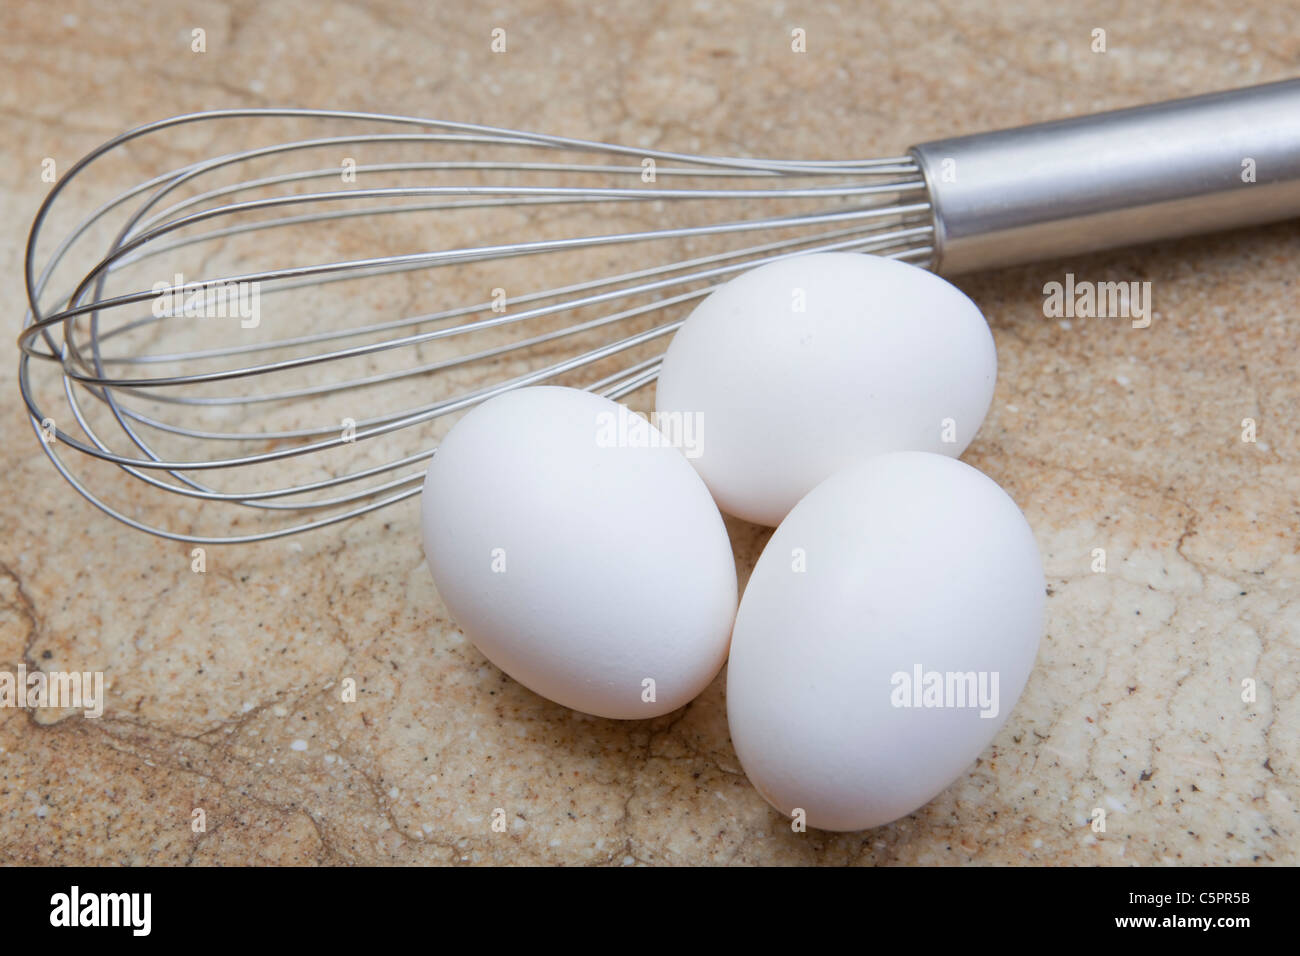 close-up look at whisk and three eggs - Stock Image